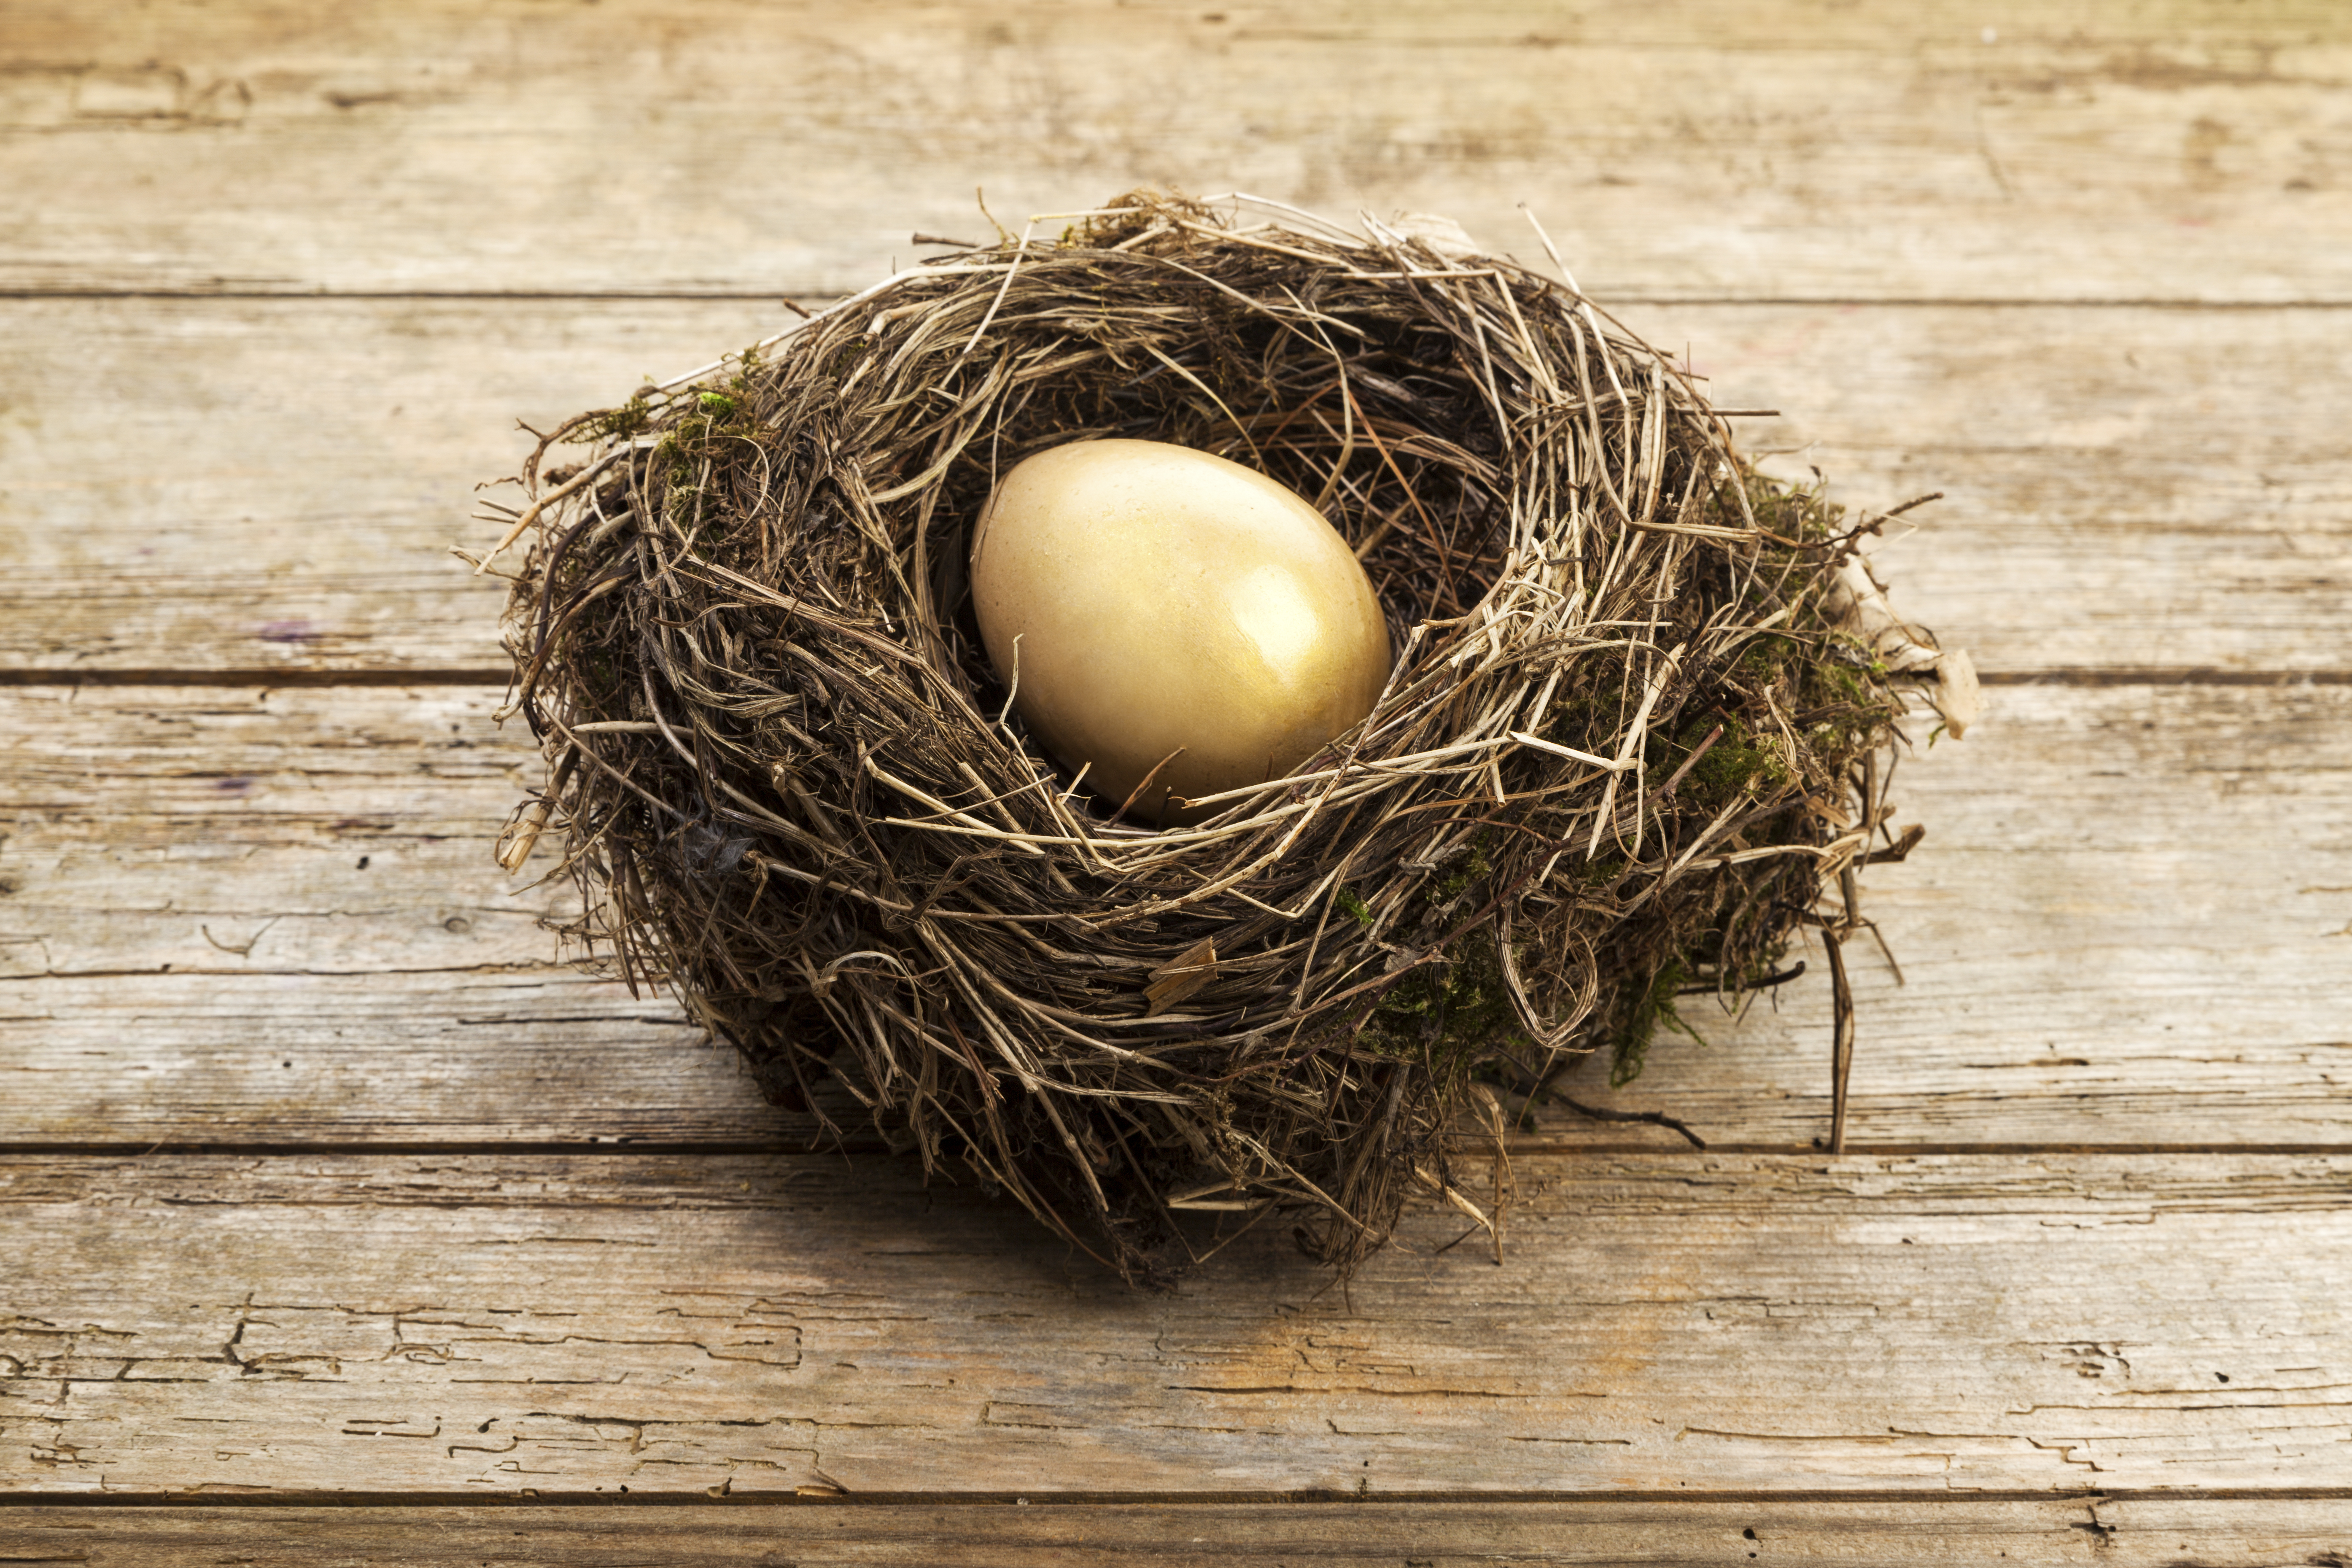 Many pensioners regret not building their nest eggs sooner